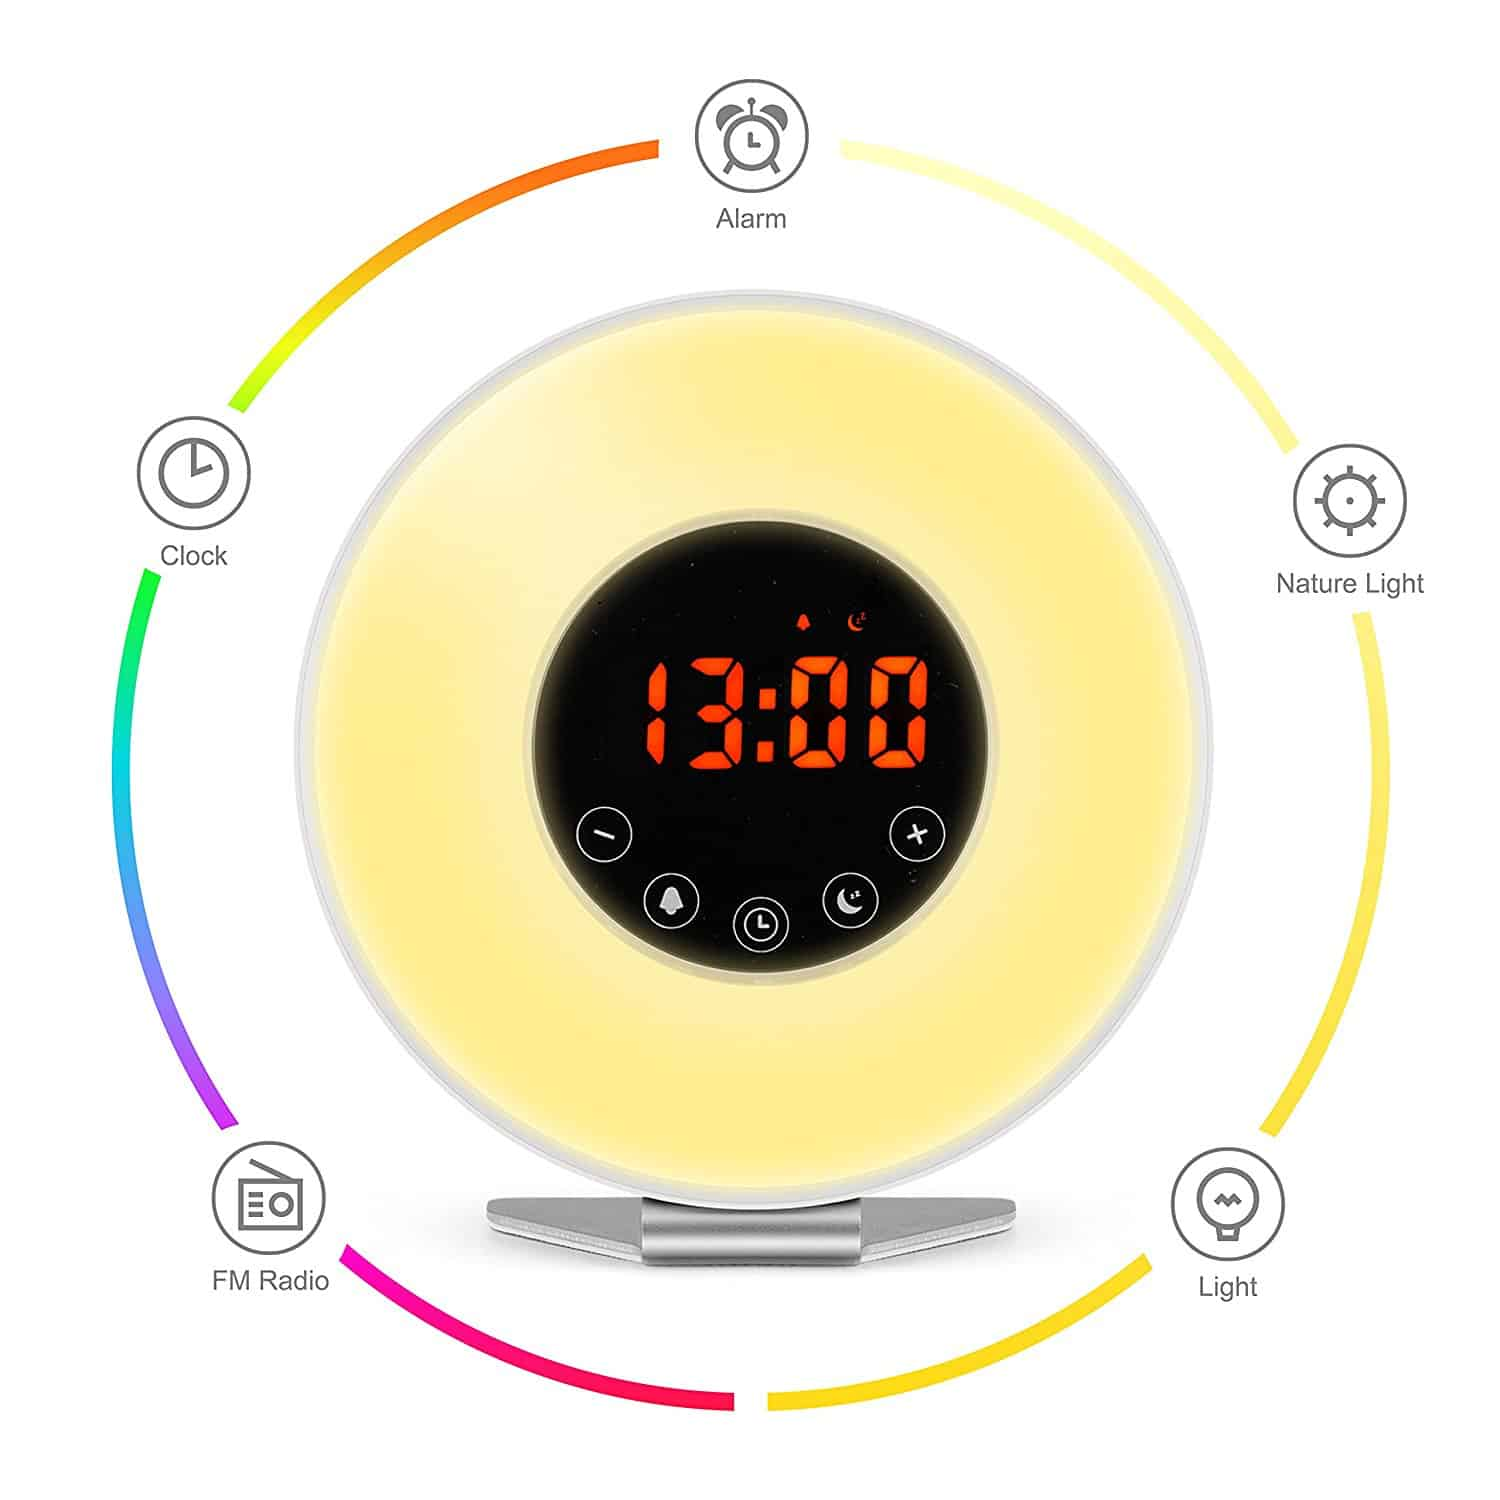 sunrise simulator alarm clock with night light from 80. Black Bedroom Furniture Sets. Home Design Ideas